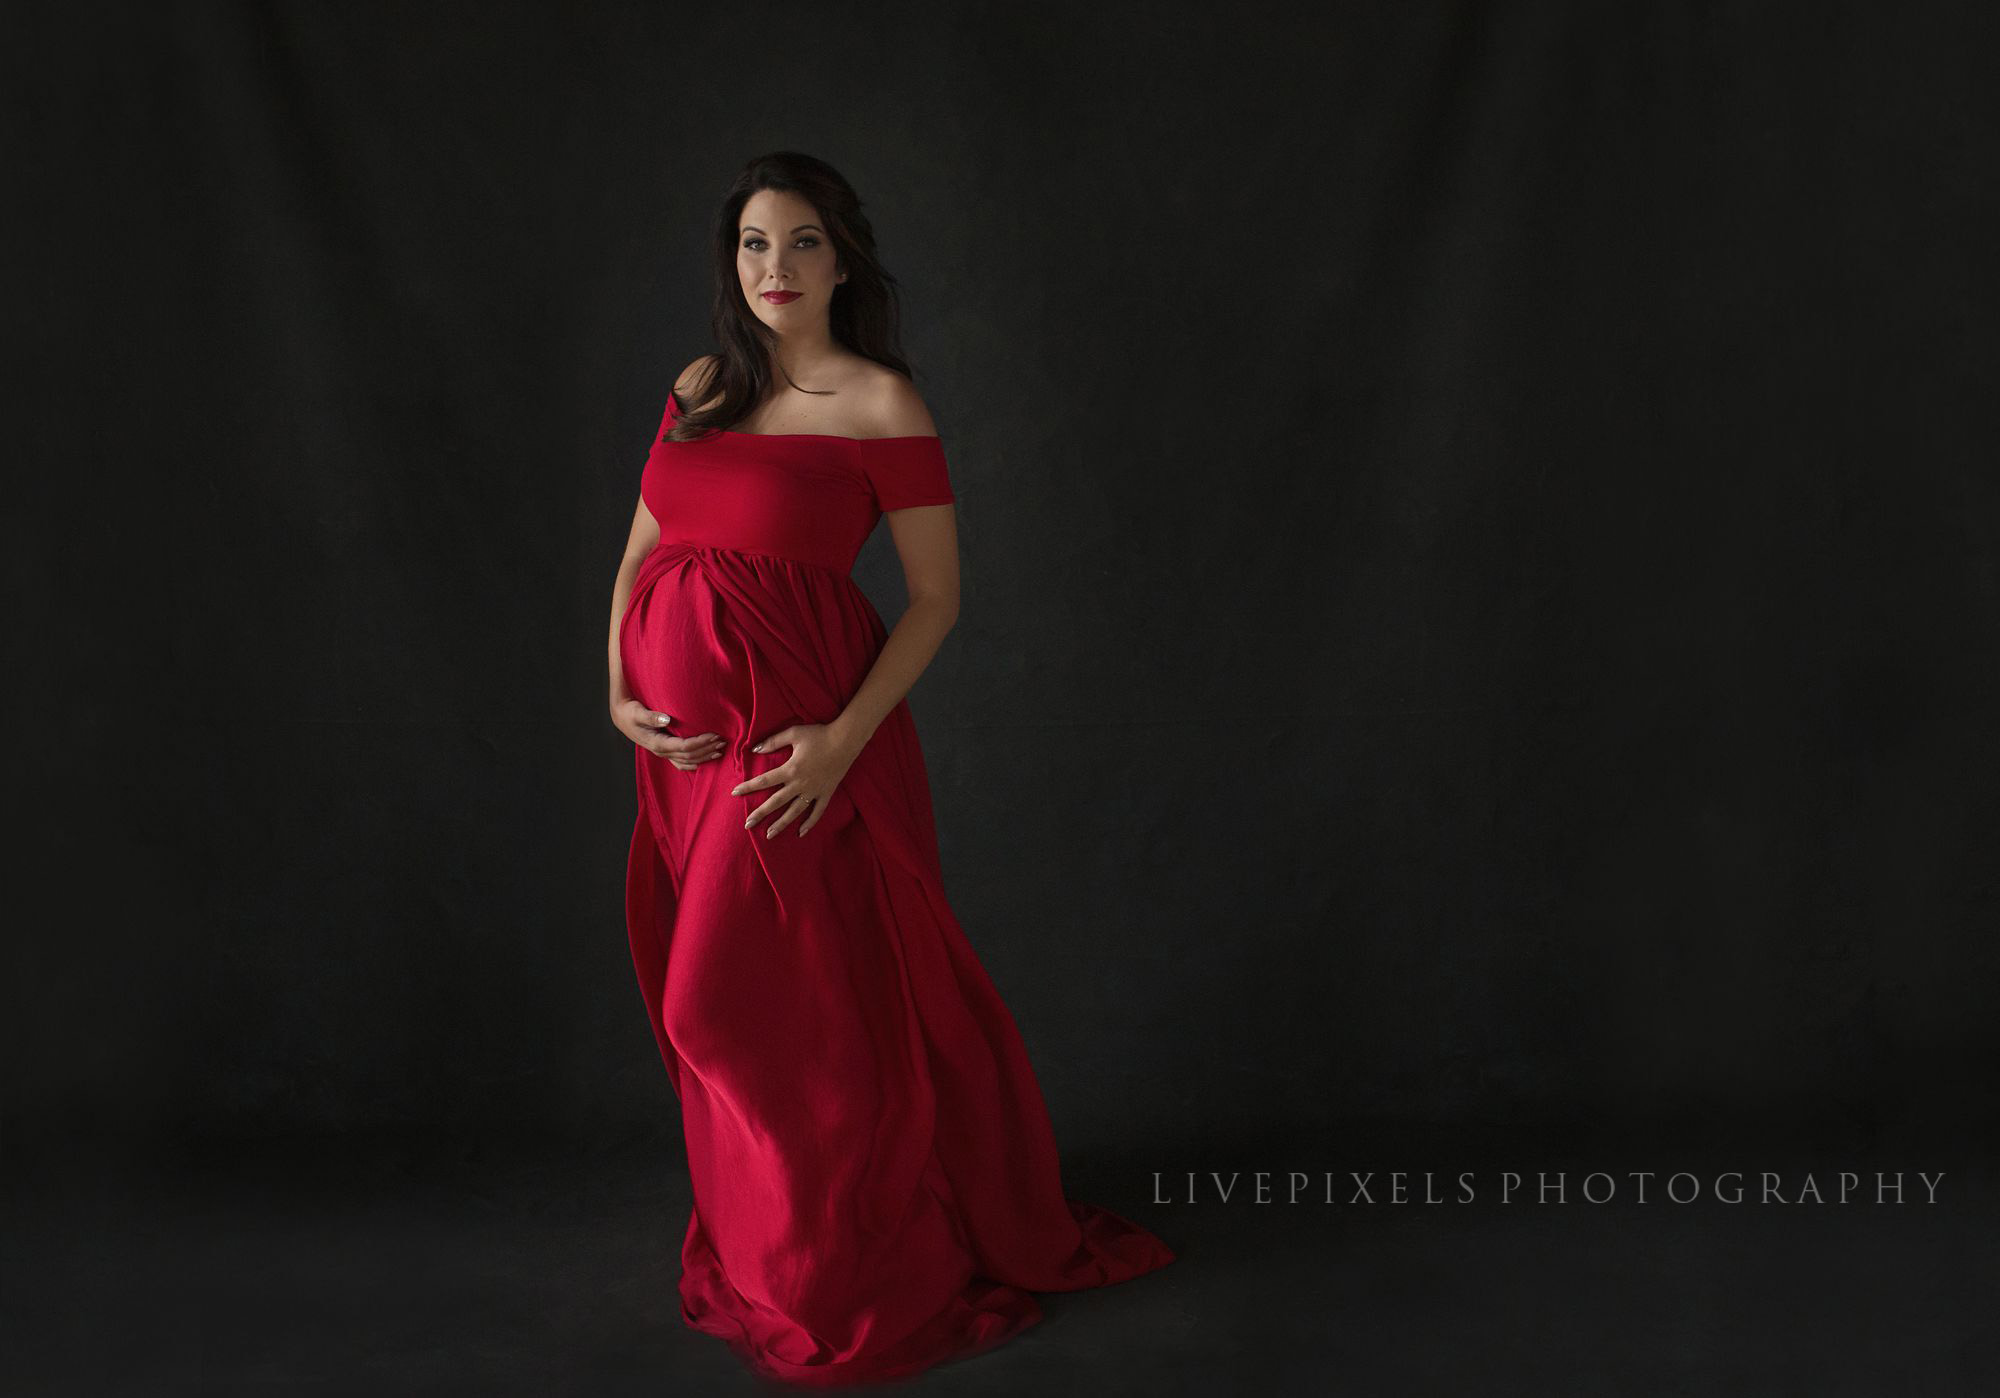 Serena Willians Inspired Maternity Portraits - Livepixels Photography, Toronto / livepixelsphotography.com